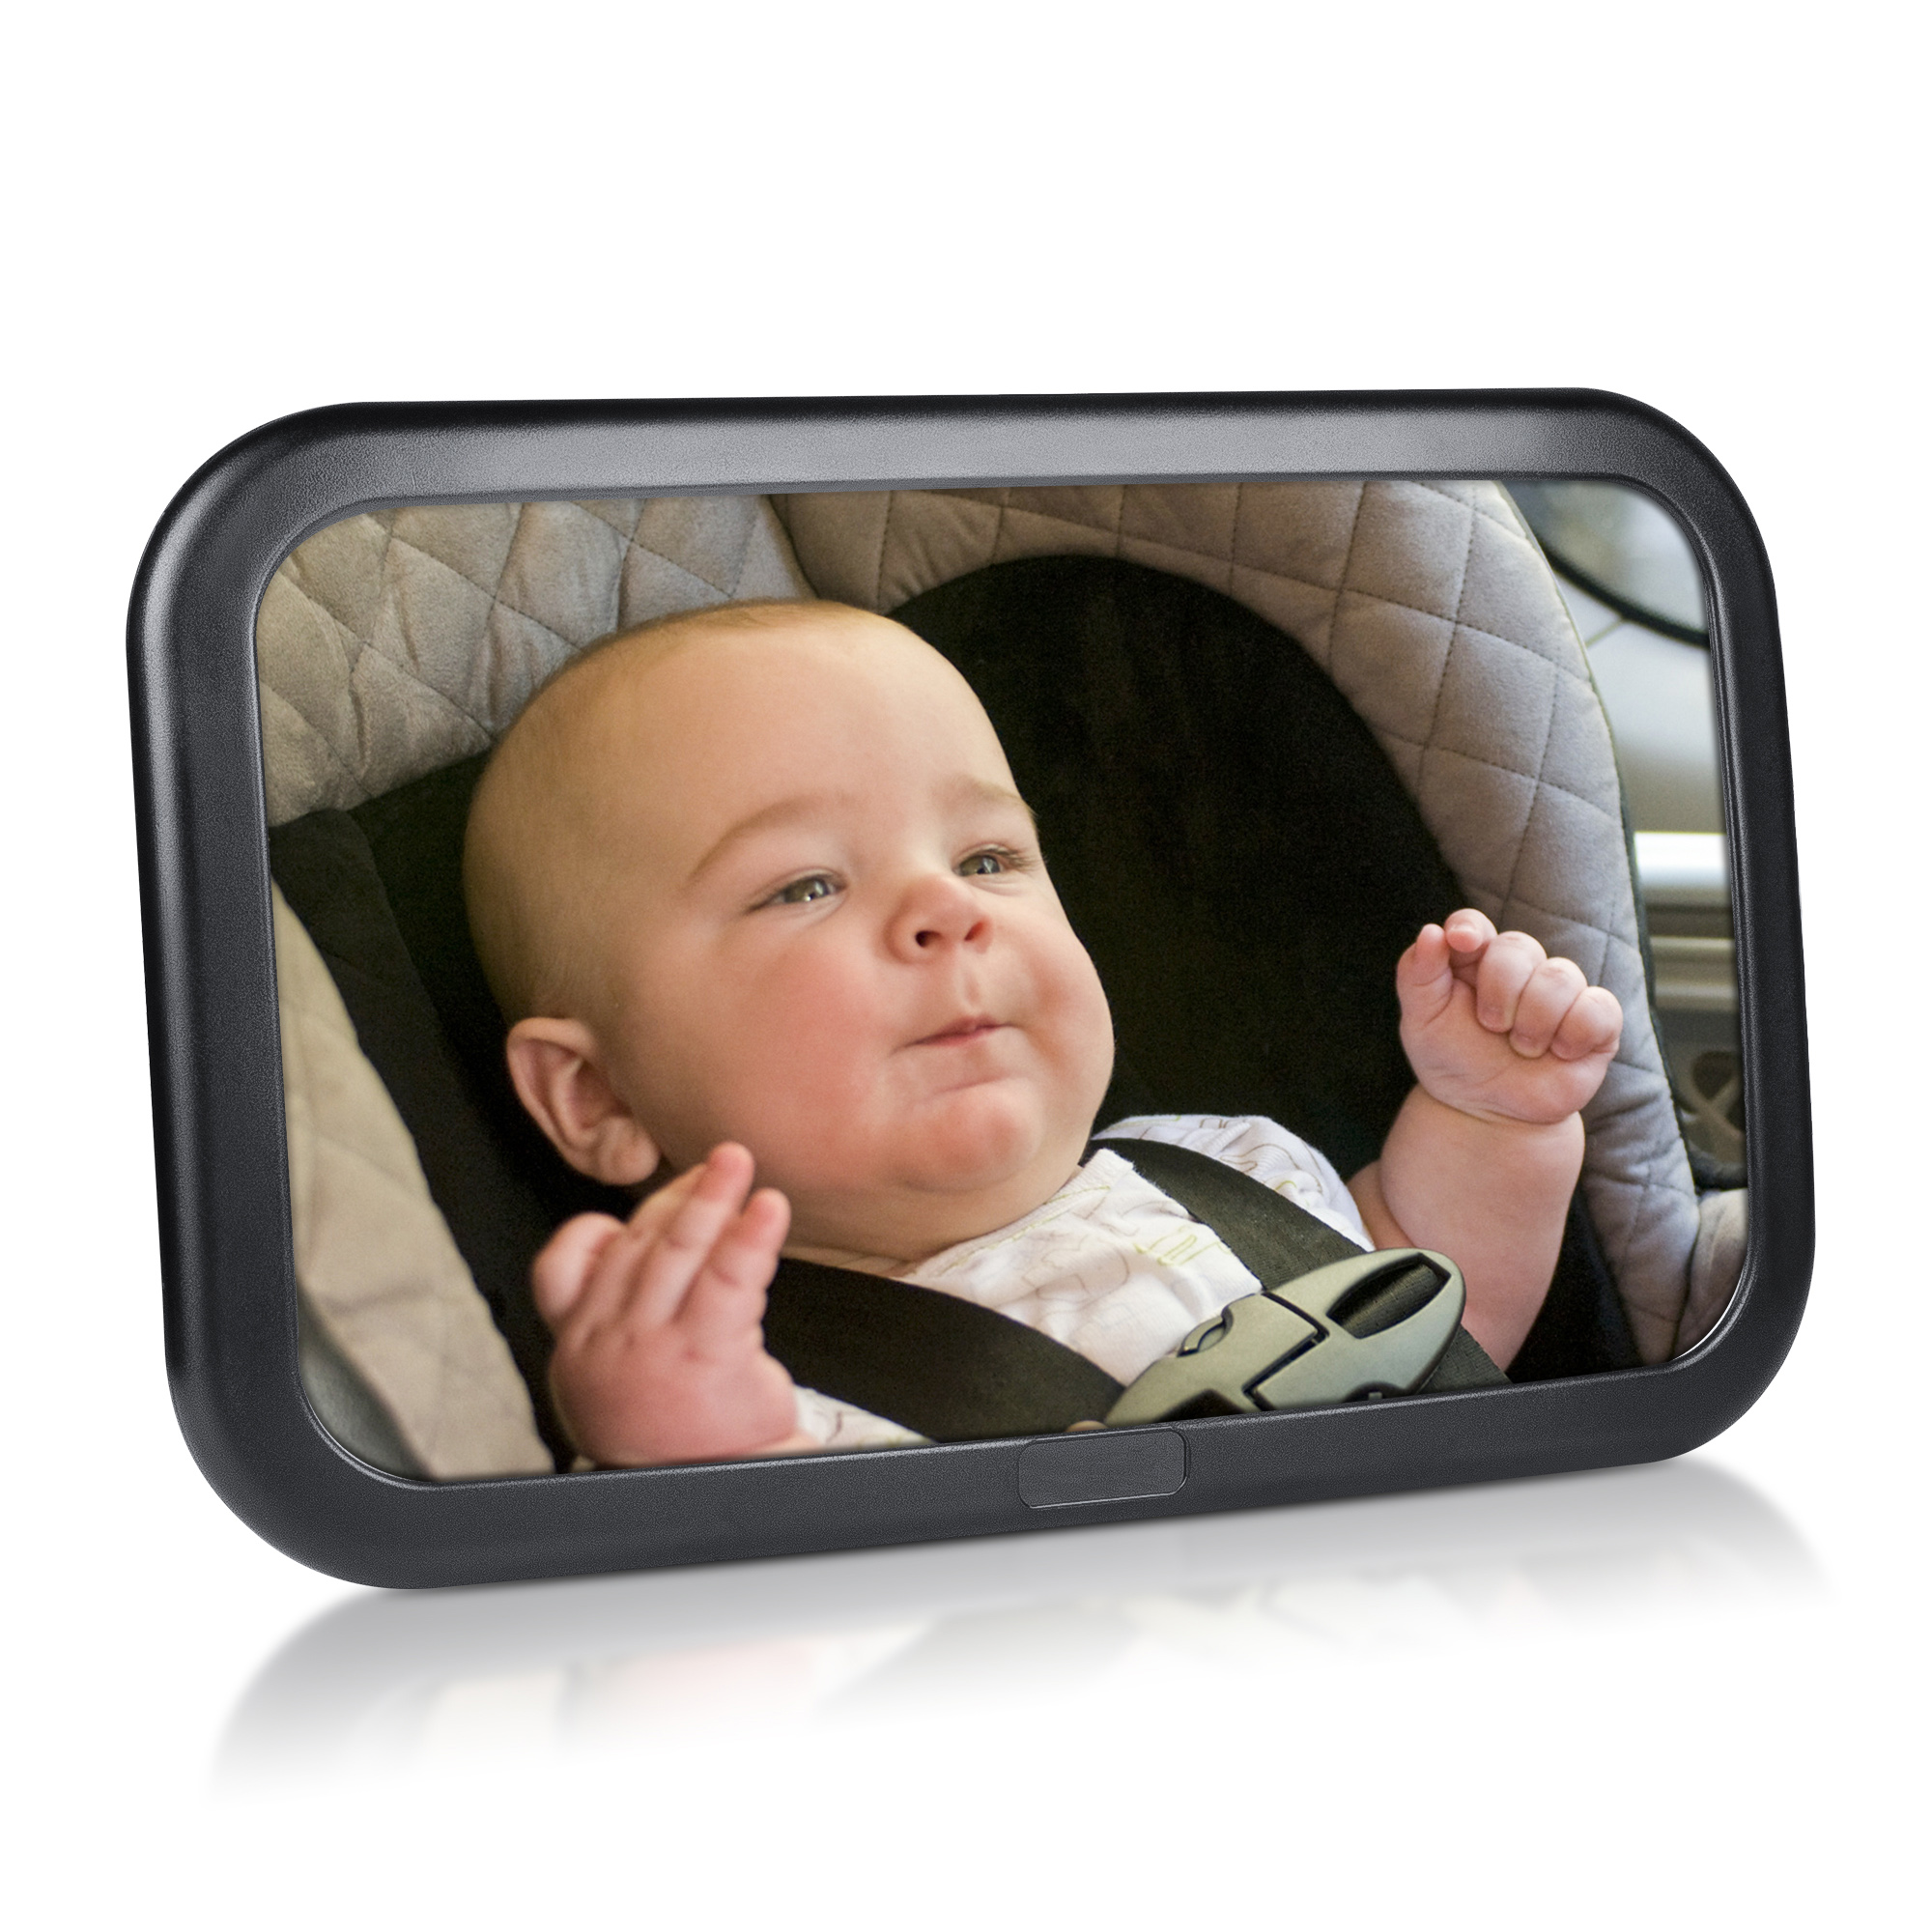 Baby Mirror for Car, Largest and Most Stable Backseat Mirror with Premium Matte Finish for Child, Rear Seat Large Wide View Safety Mirror for Baby, Safe, Secure and Shatterproof